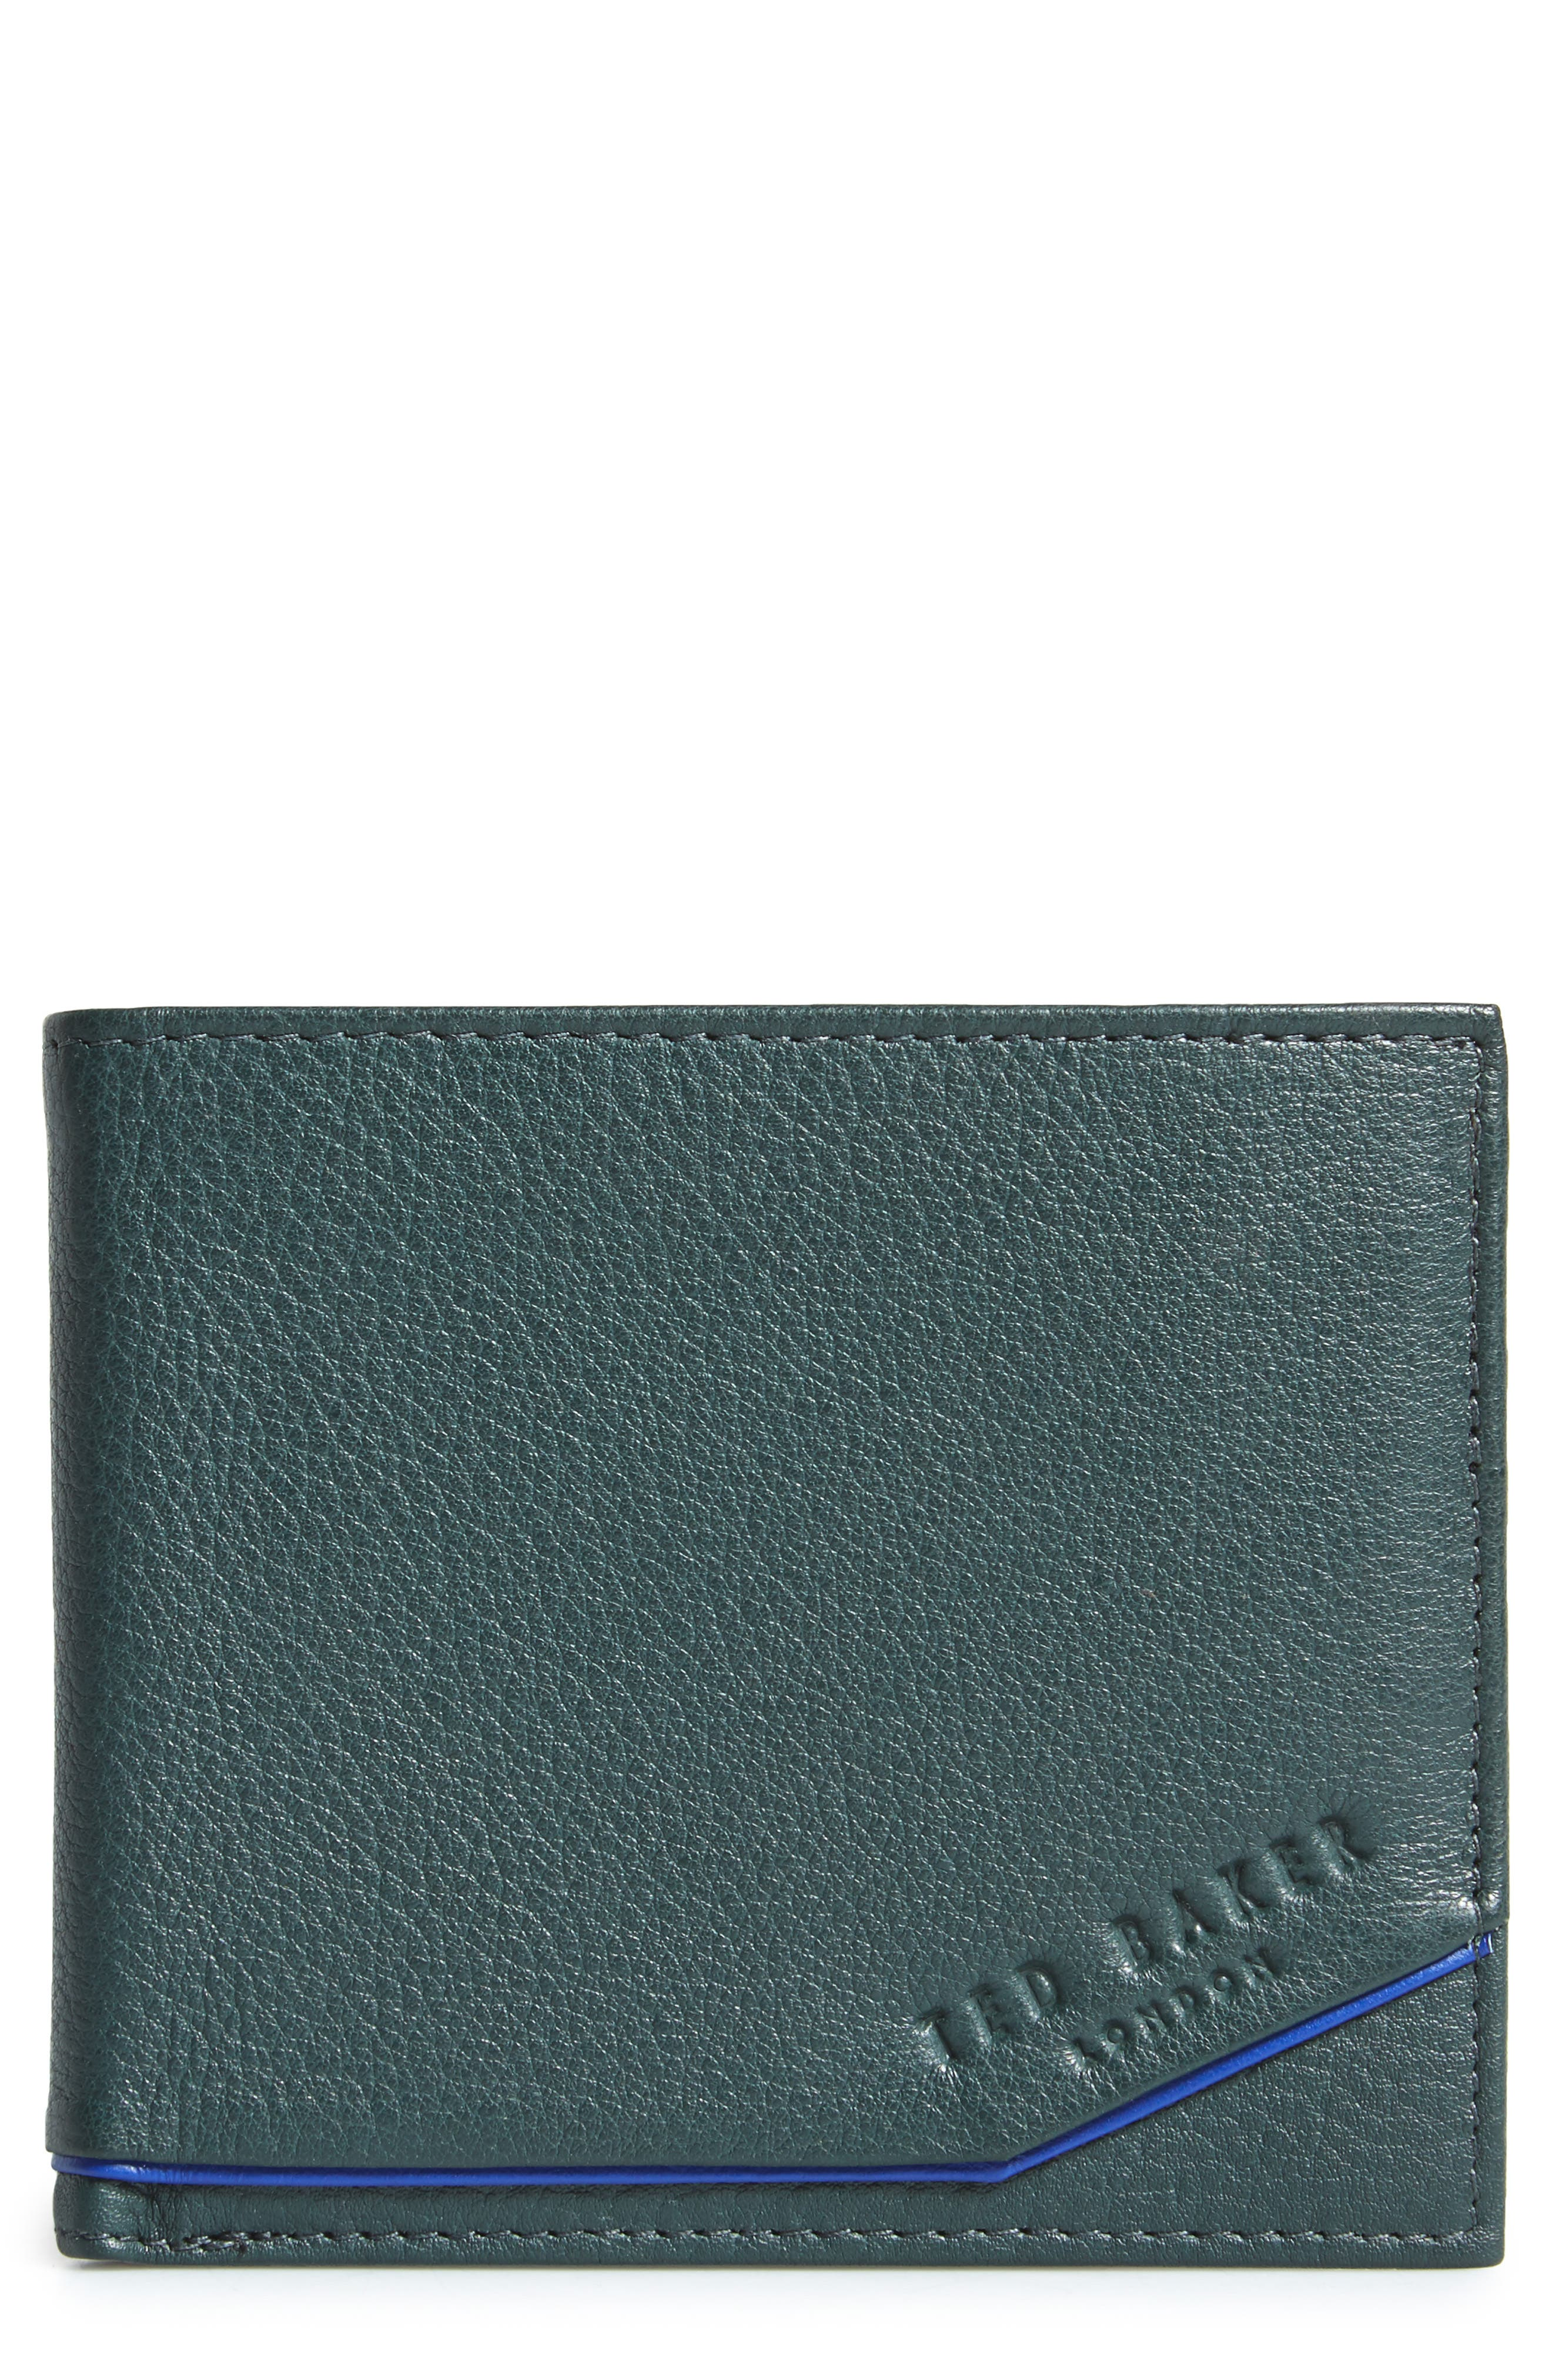 Main Image - Ted Baker London Persia Leather Wallet